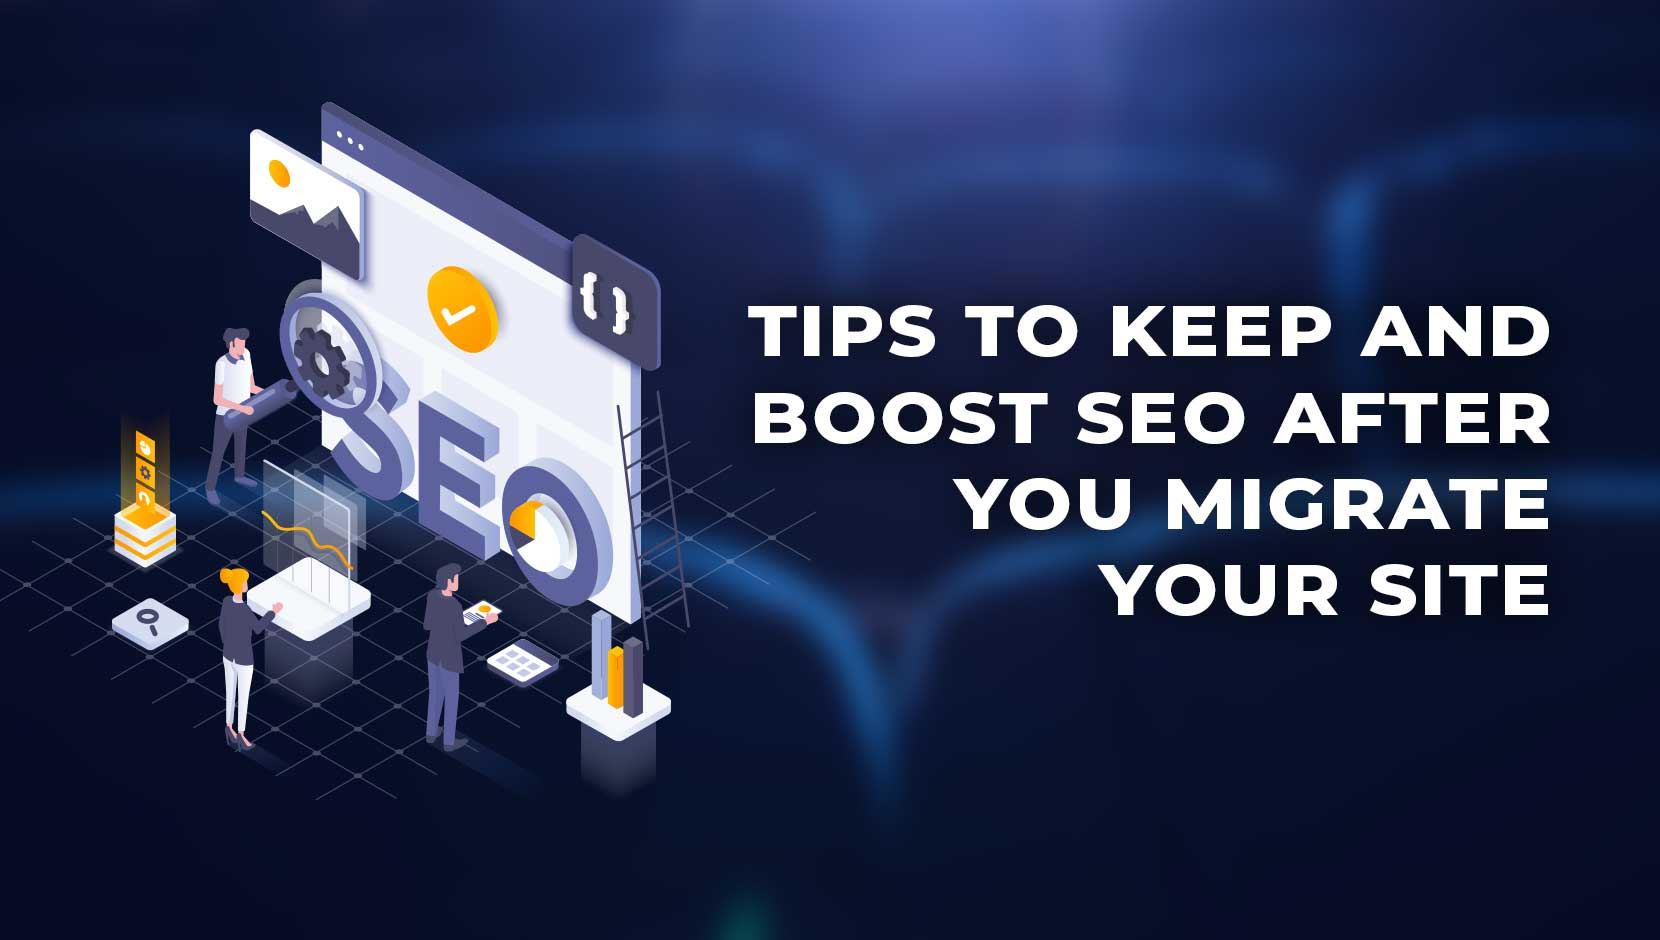 7 Tips to Keep and Boost SEO After You Migrate Your Site